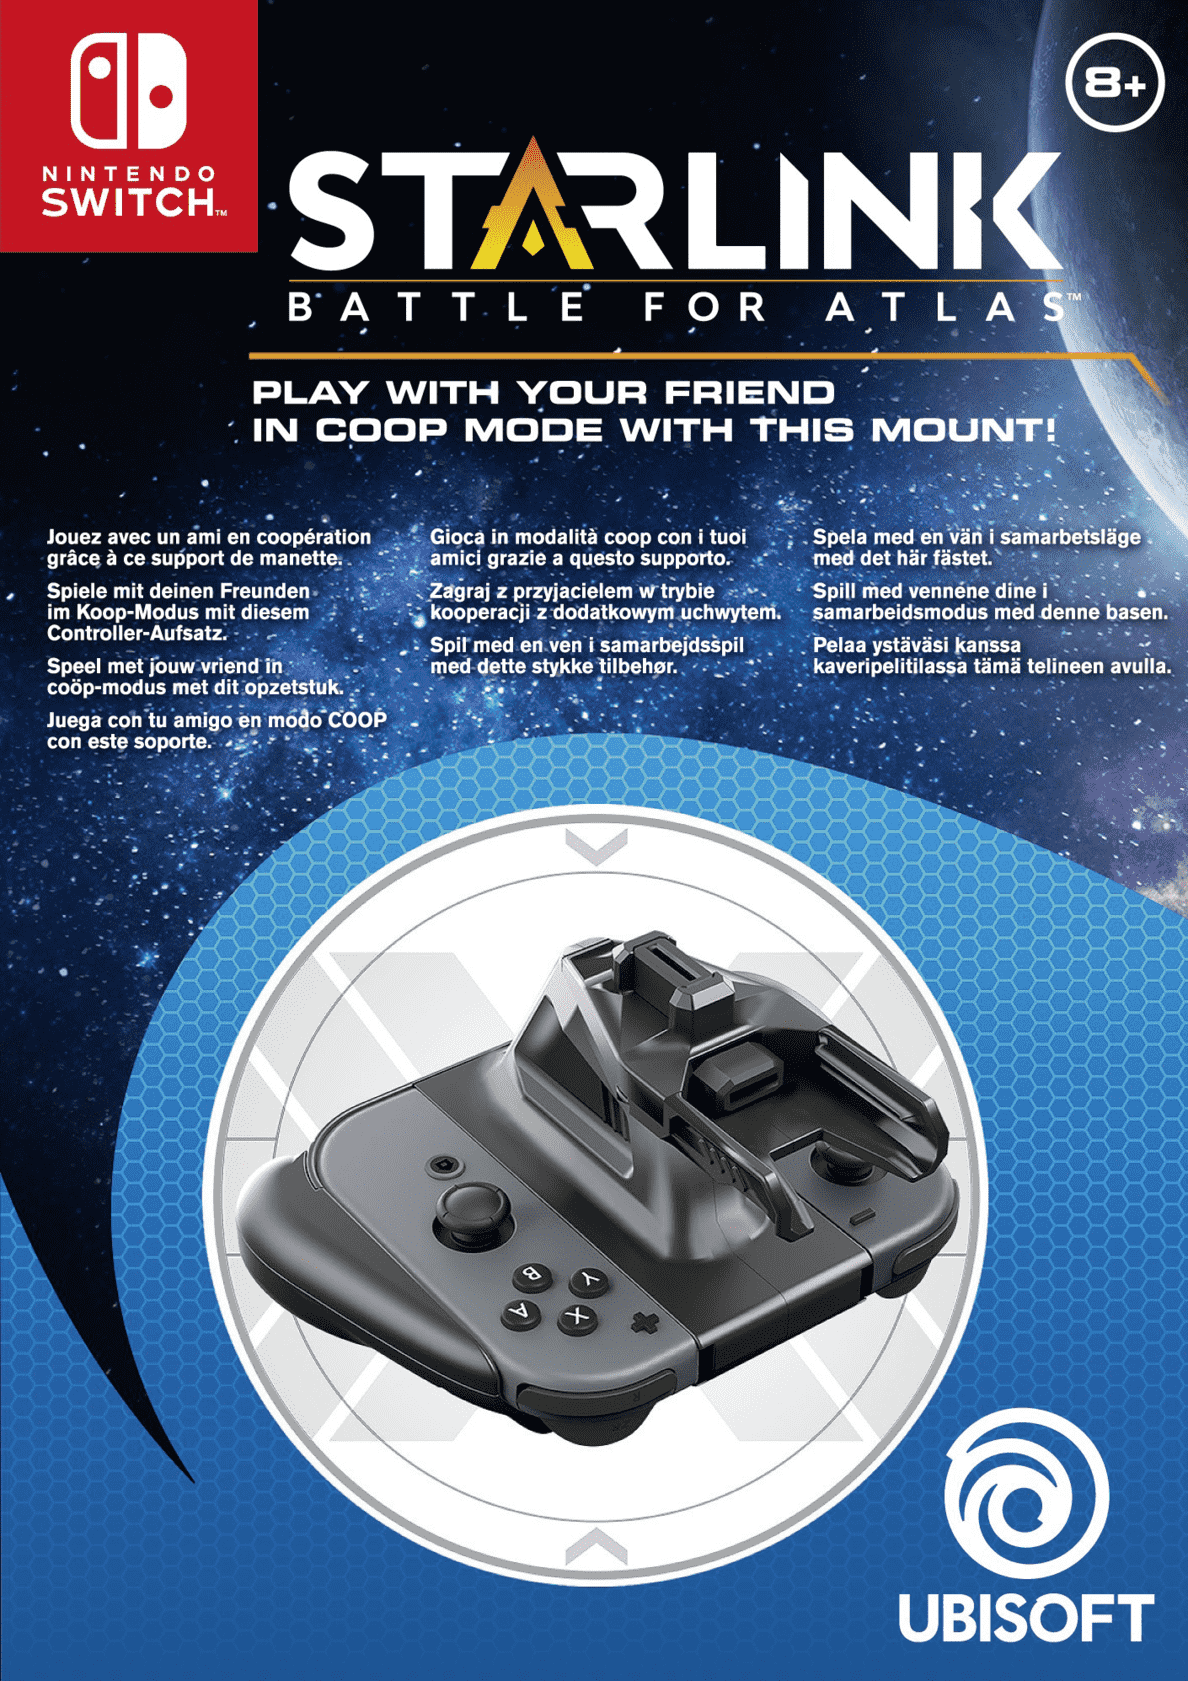 UBISOFT  Starlink: Battle for Atlas: Switch-Controller Mount Pack Nintendo Switch Controller Adapter | 03307216035930